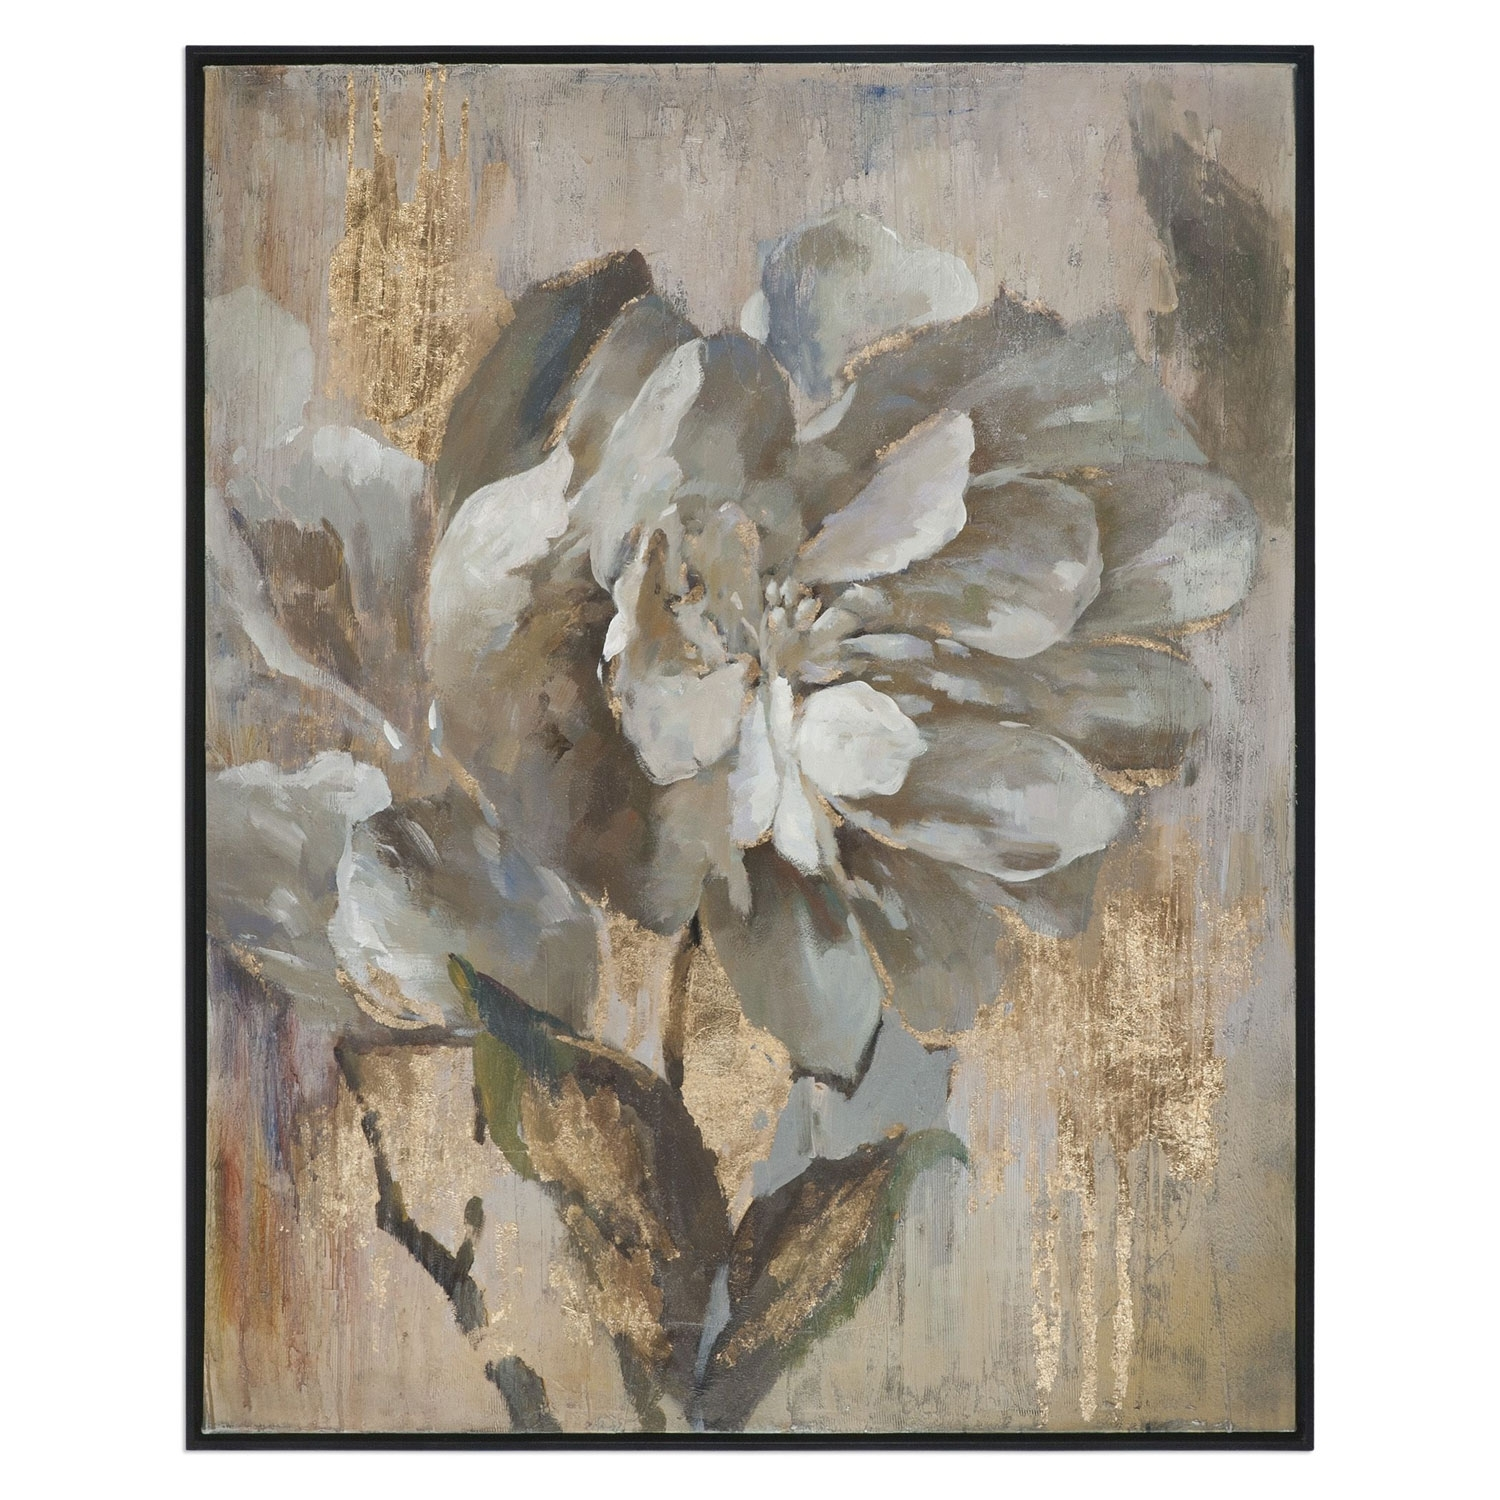 Uttermost Dazzlinggrace Feyock: 41 X 51 Inch Wall Art 35330 pertaining to Uttermost Wall Art (Image 11 of 20)